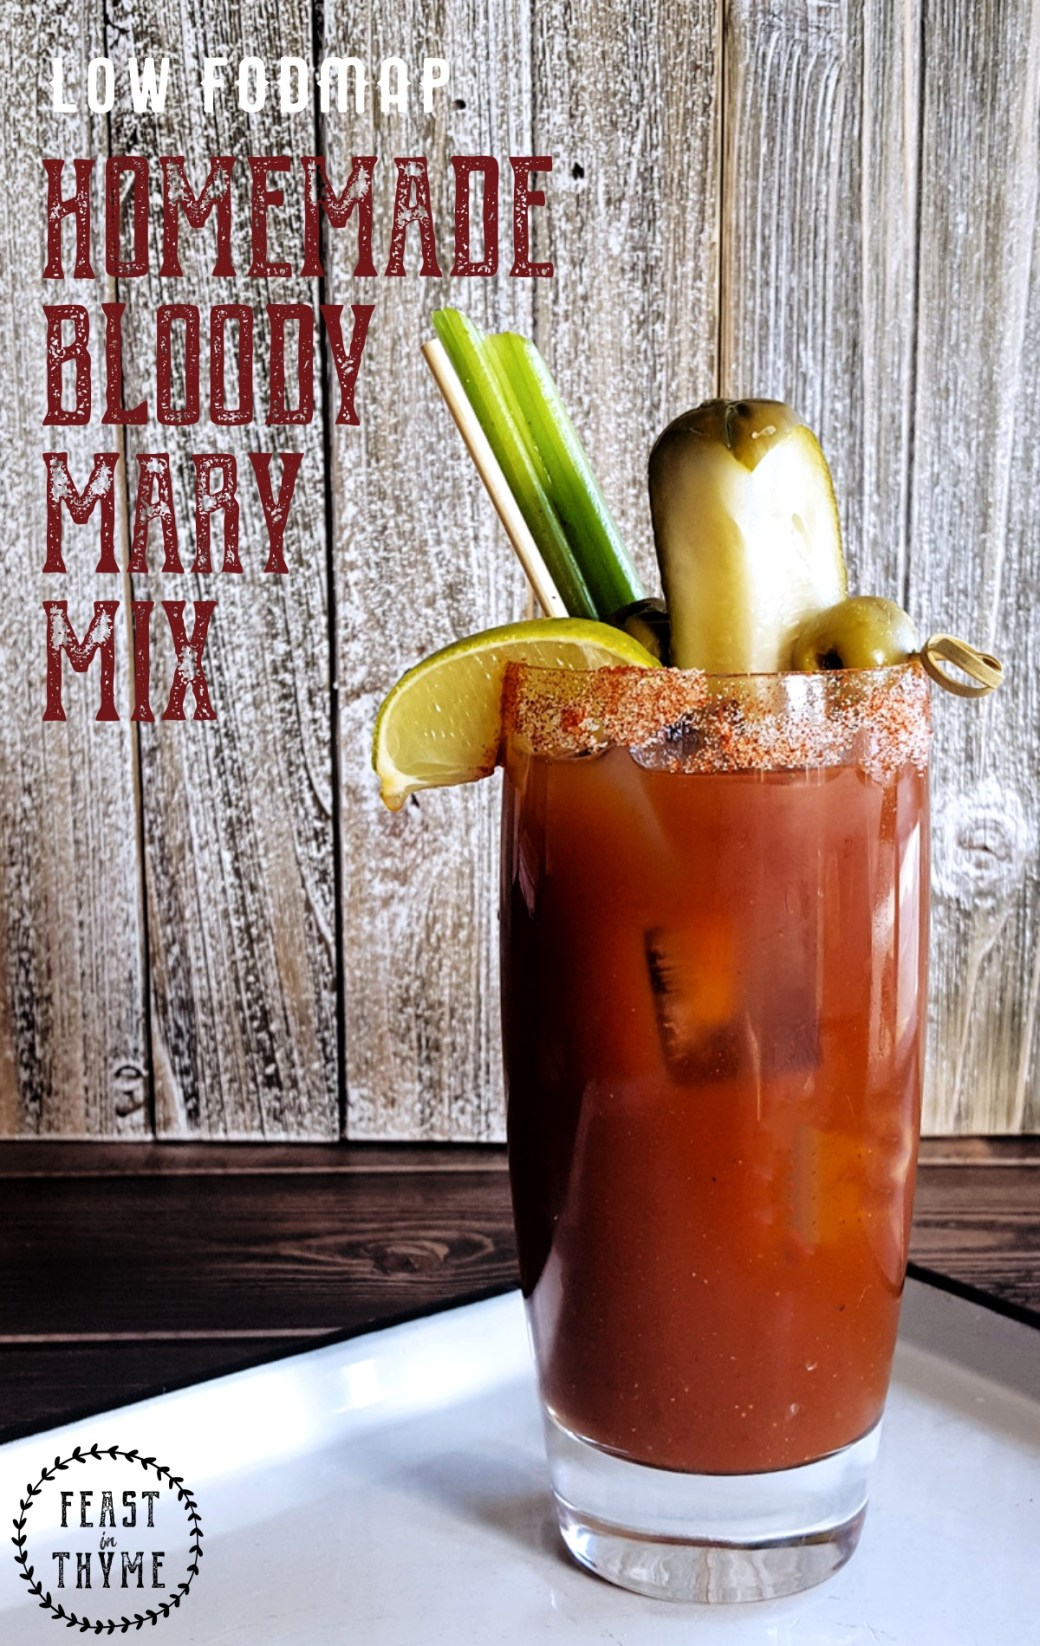 Make deliciously spicy, seriously savory, extremely easy Homemade Bloody Mary Mix for your next brunch! (Low FODMAP, Gluten Free) #lowfodmap #bloodymary #cocktail | FeastInThyme.com